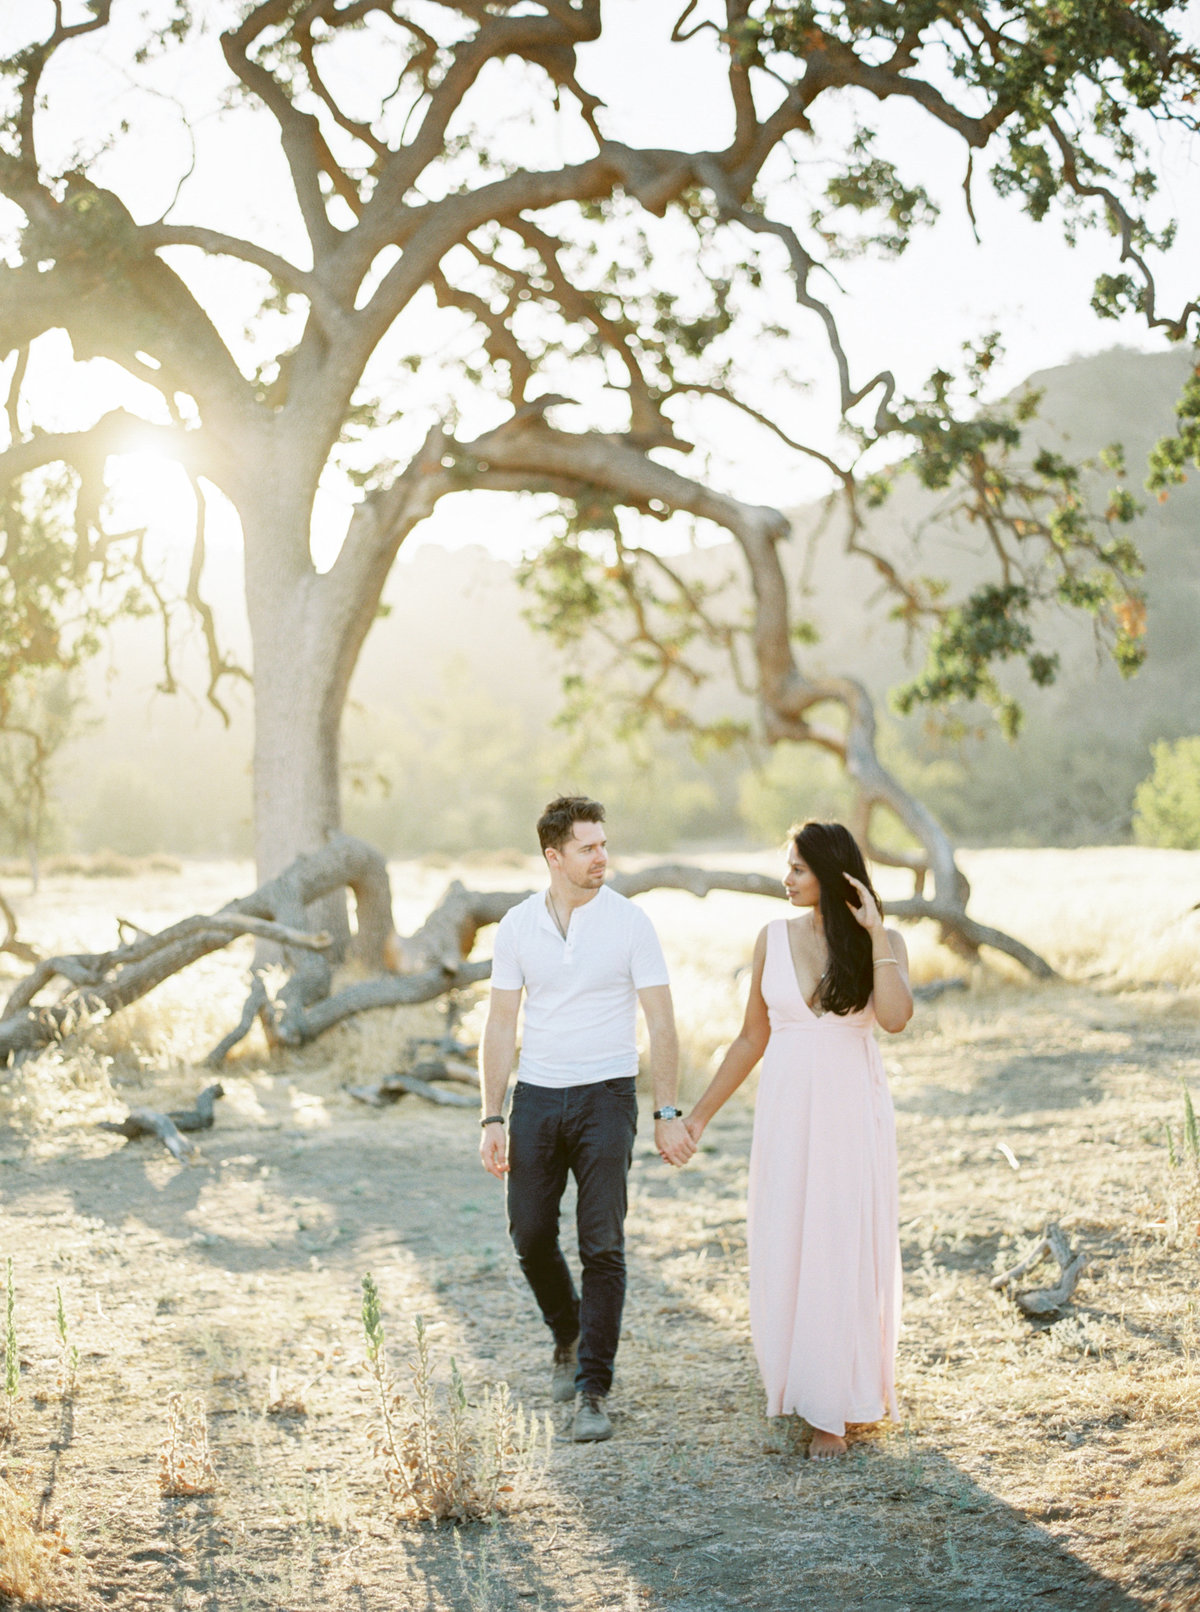 CORNELIA ZAISS PHOTOGRAPHY | RIMA + ALEX PORTRAIT SESSION 098